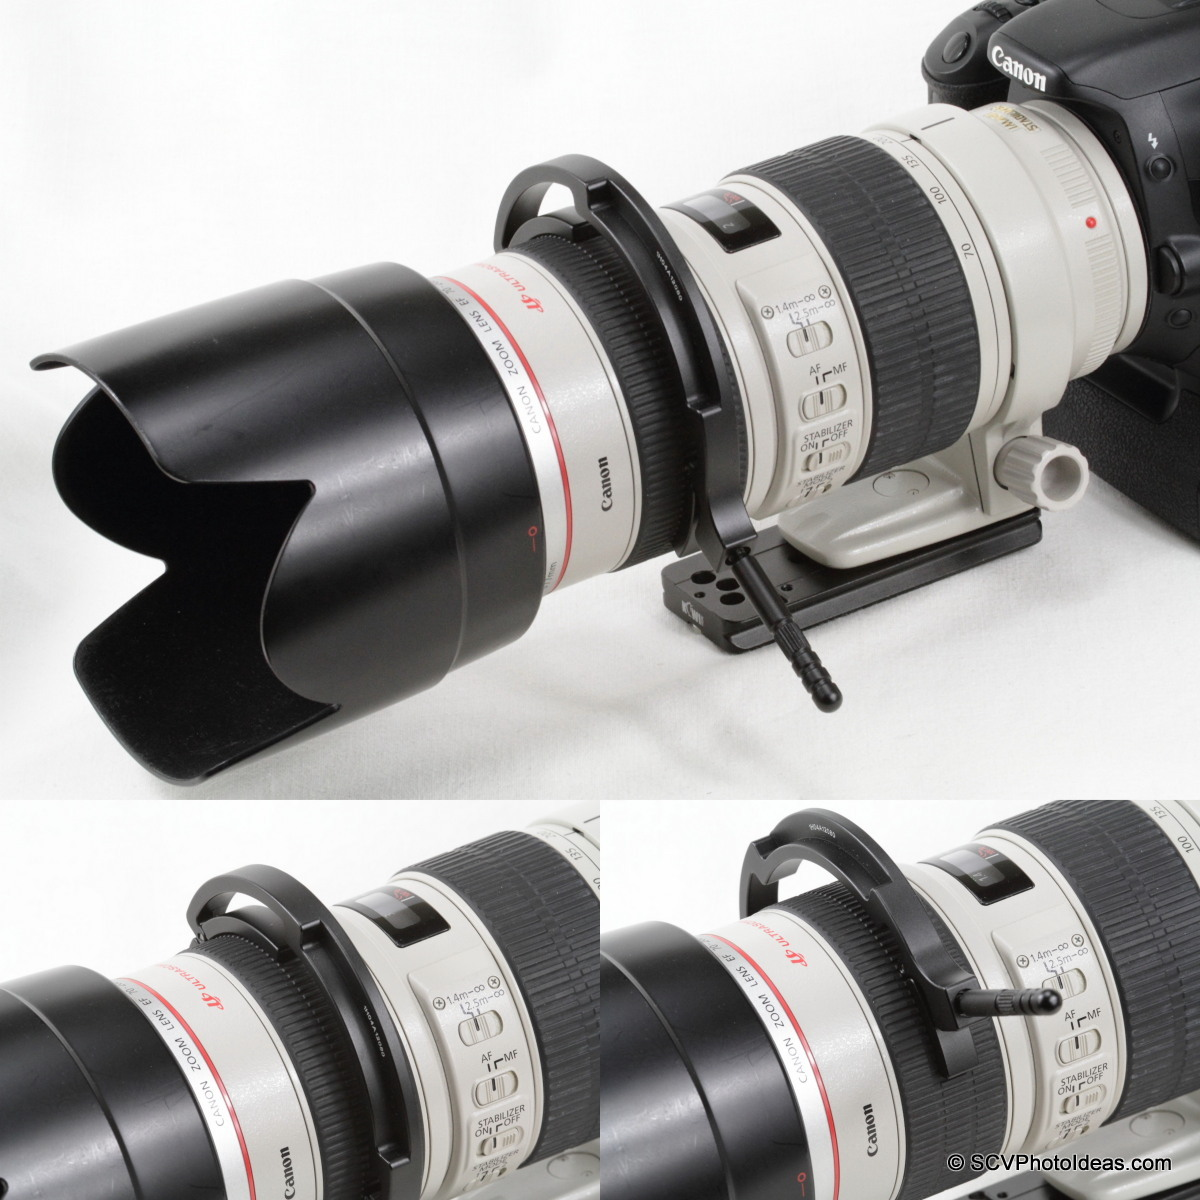 Sunwayfoto DRH-77 Focusing Handle on Canon EF 70-200 L IS USM focus ring